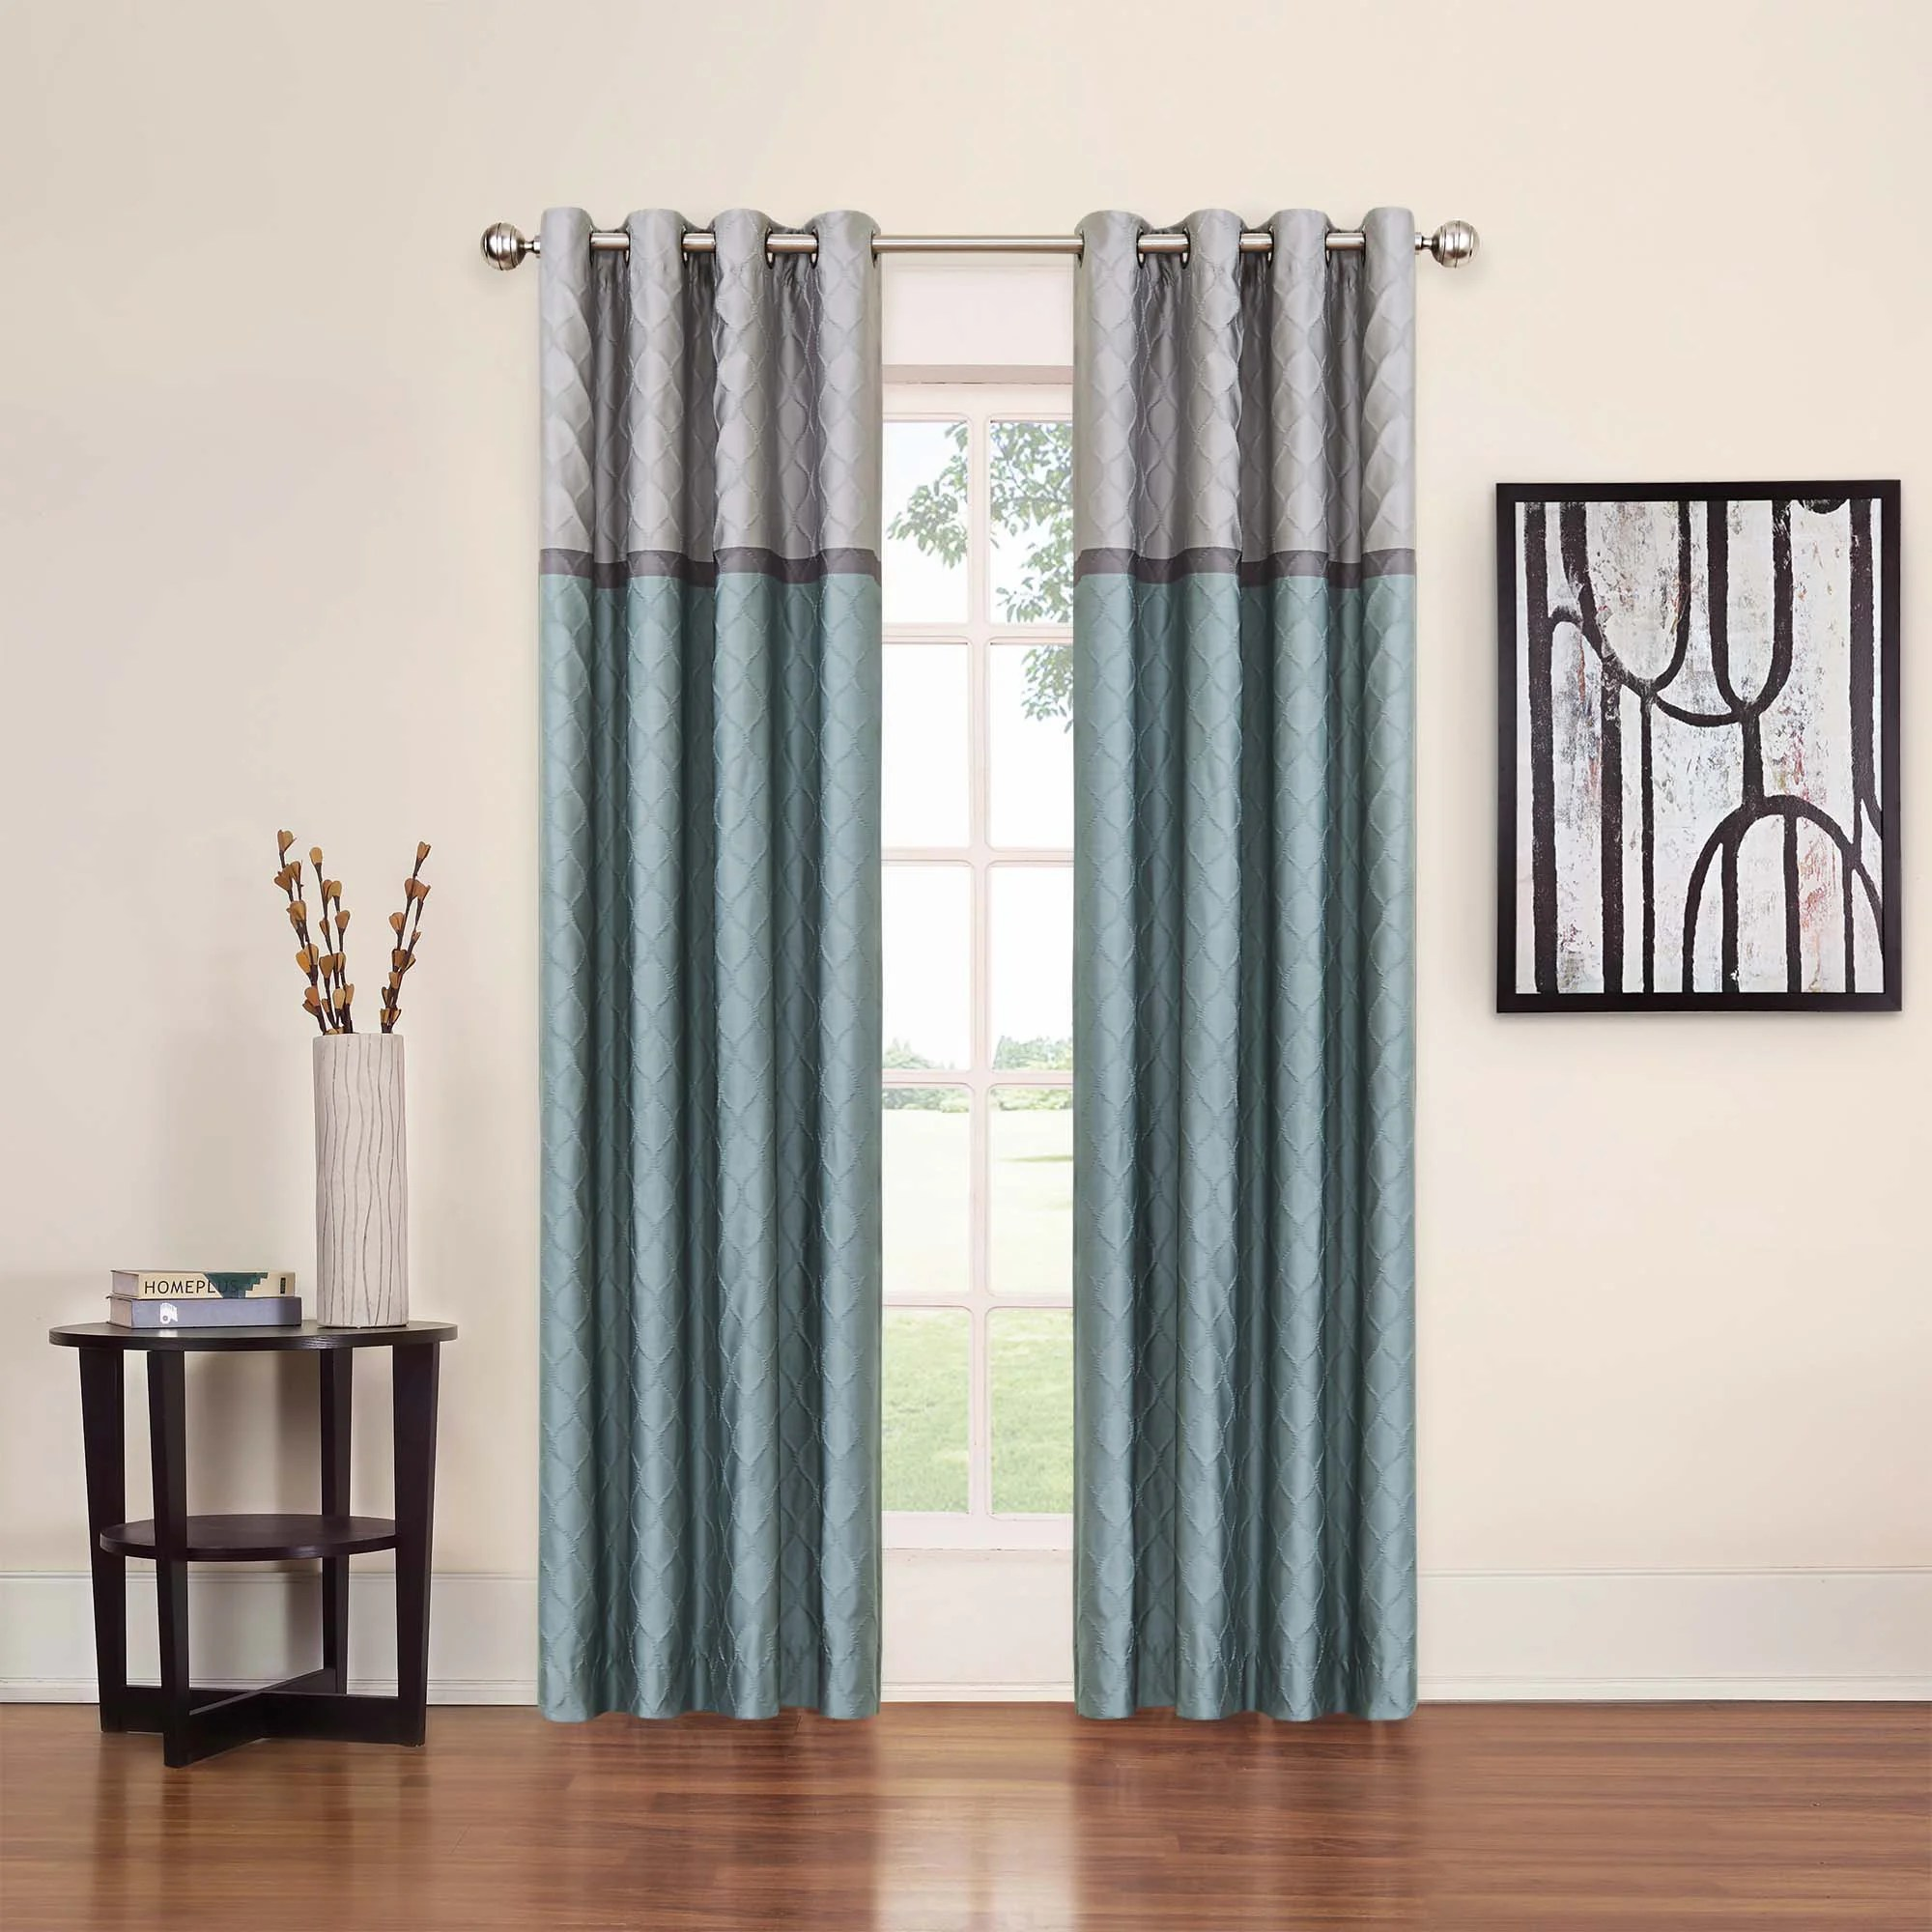 Window Coverings To Keep Heat Out Details About Eclipse Arno Thermalayer Blackout Window Curtain Panel